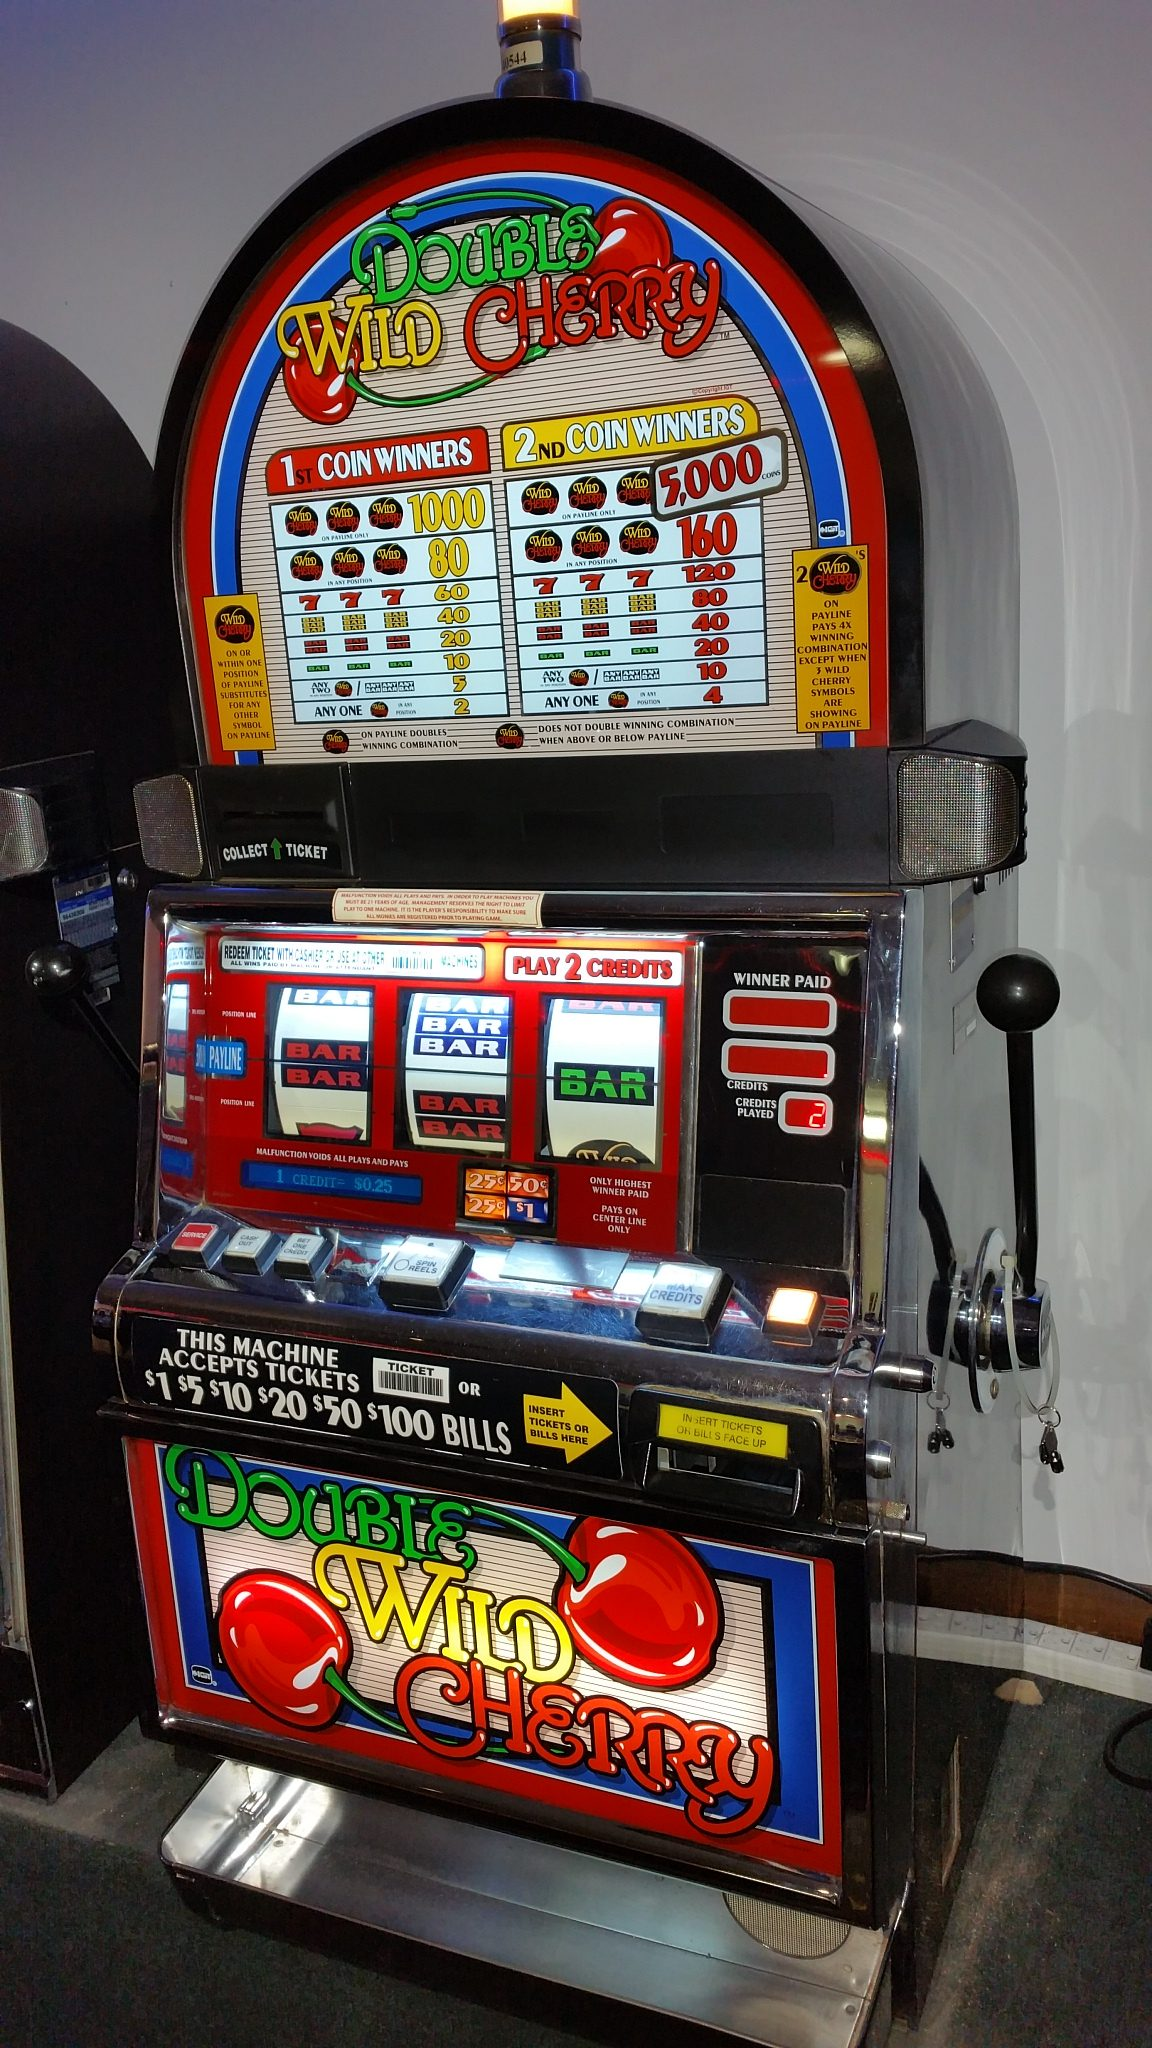 IGT S2000 Double Wild Cherry 2 Coin Multi-denominational Slot Machine